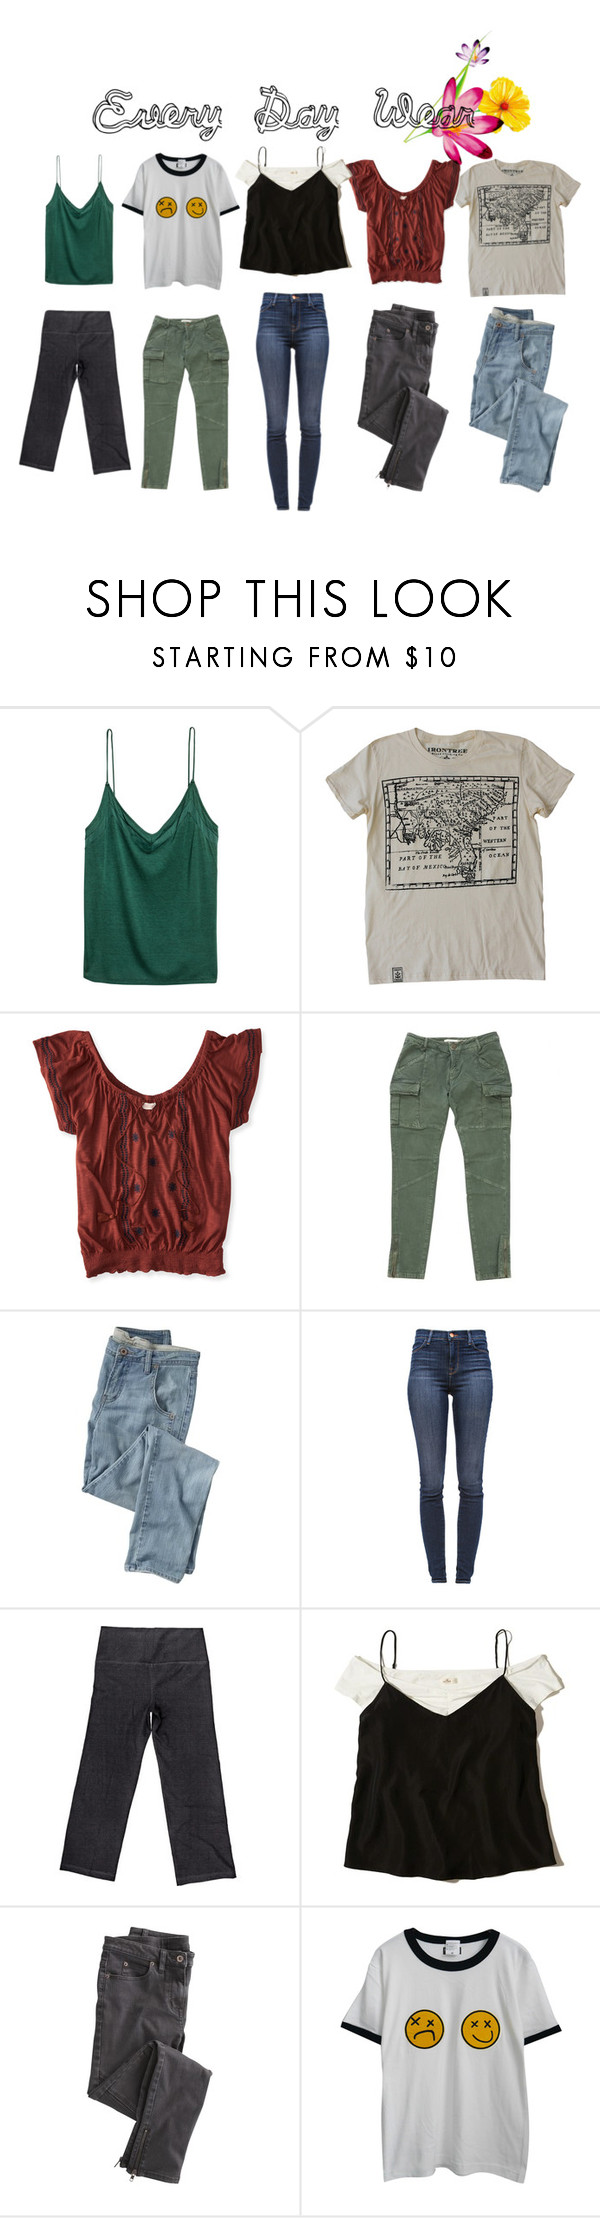 """""""every day wear"""" by travel-out ❤ liked on Polyvore featuring H&M, Aéropostale, Maje, Wrap, J Brand, 3N2, Hollister Co. and Chicnova Fashion"""